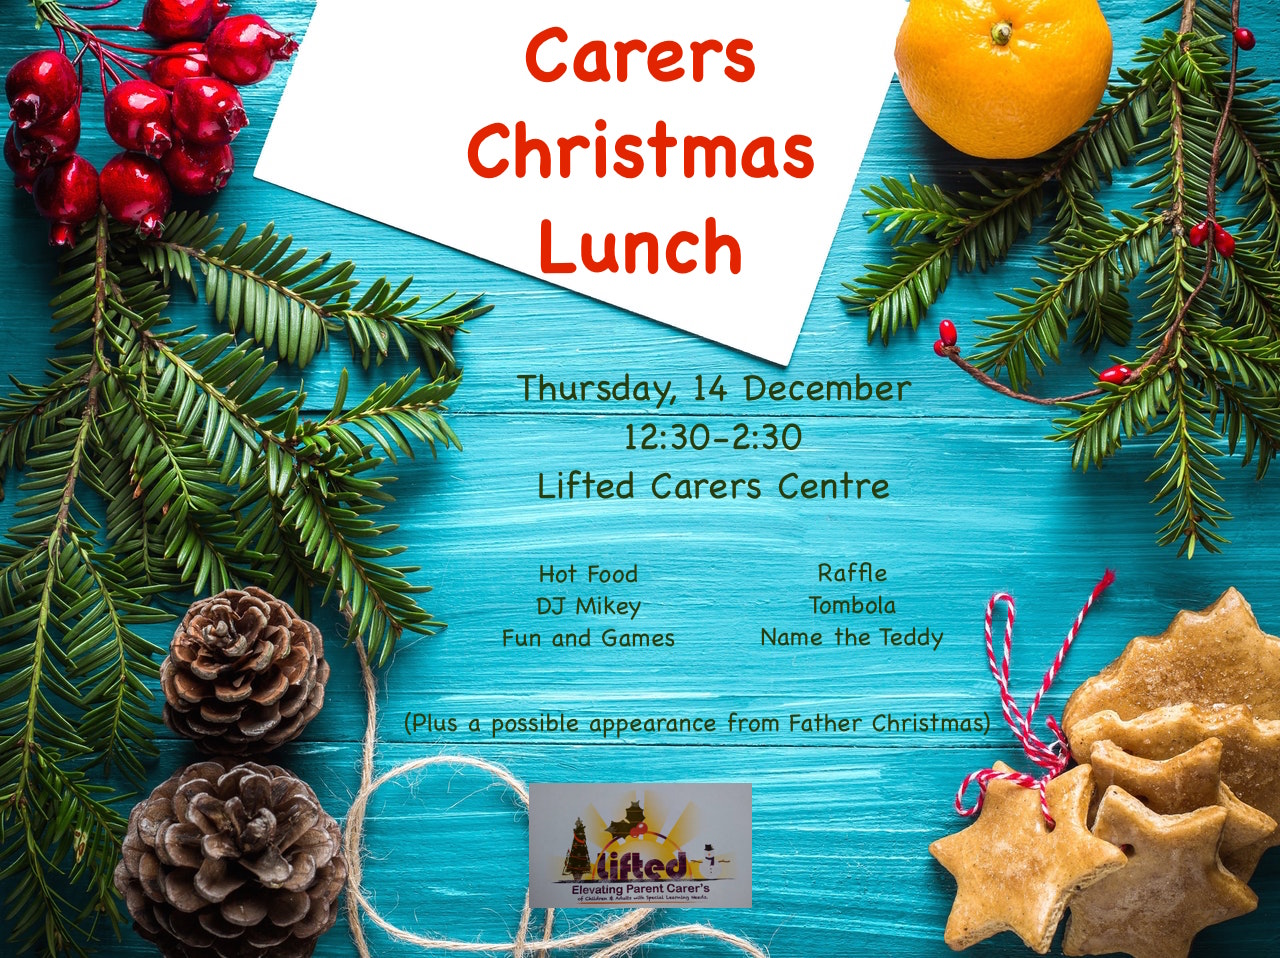 Christmas Lunch @ Lifted Carers Centre 2017 landscape poster | image source: pexels.com